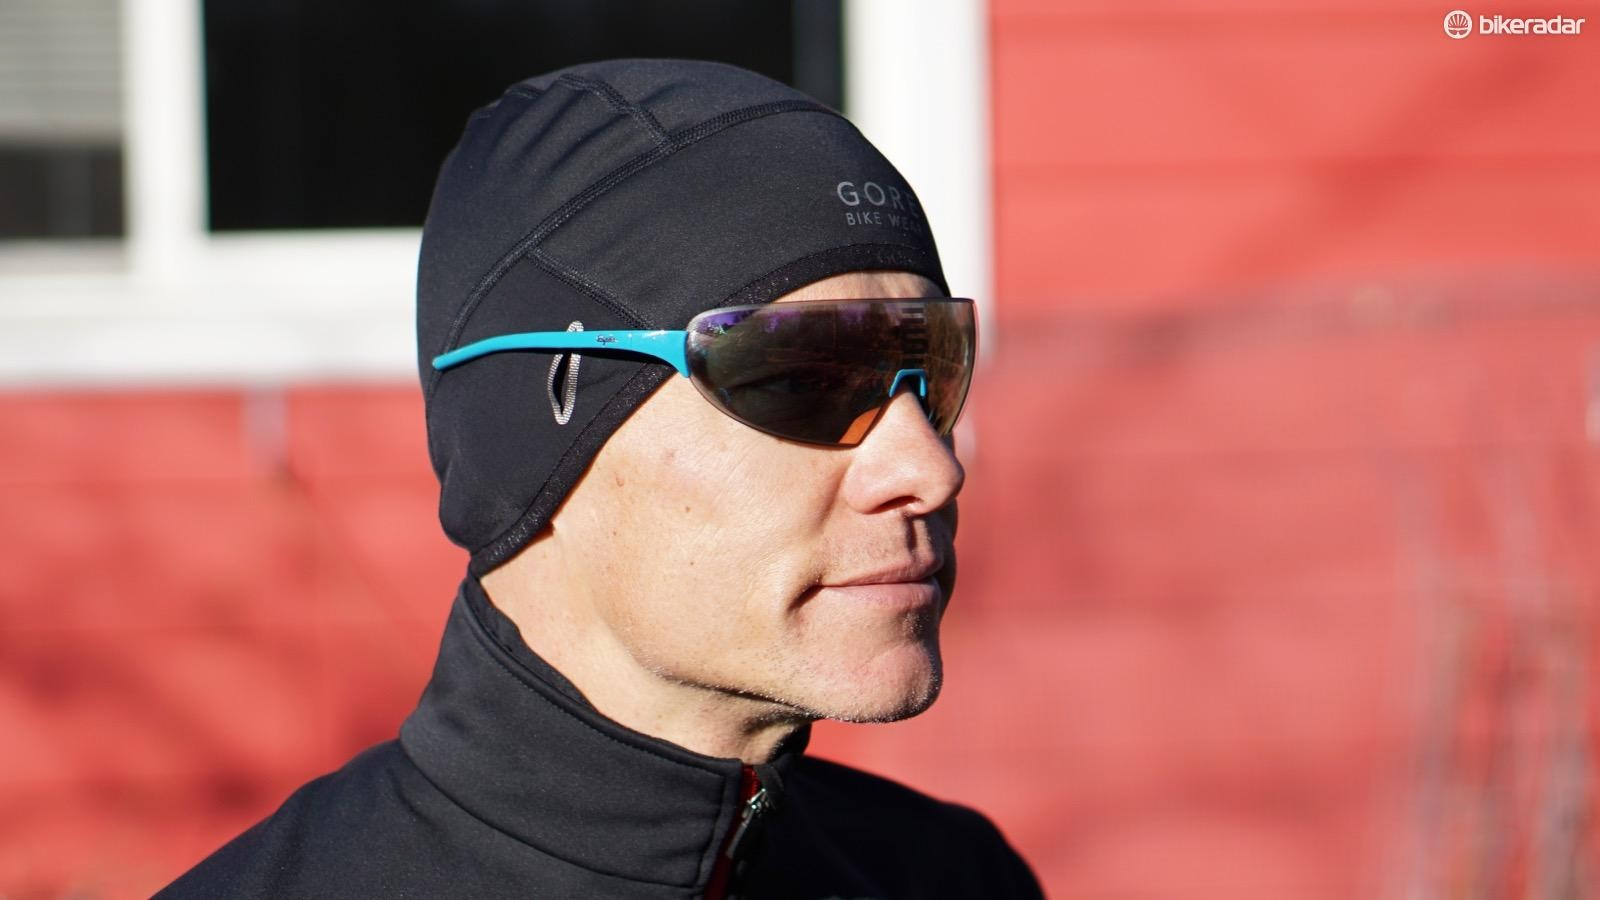 The Gore Universal SO Thermo Helmet Cap is easily my favorite winter hat